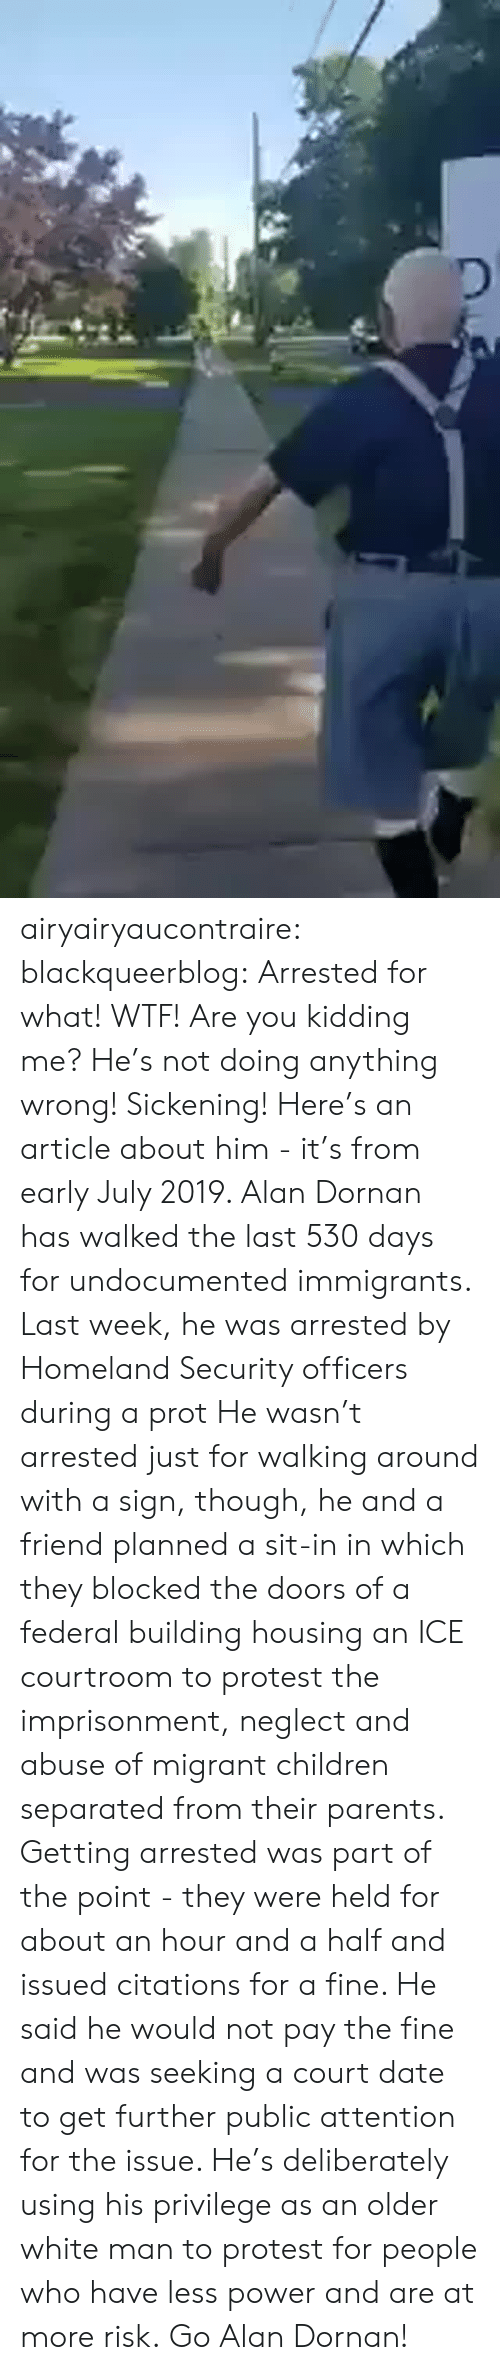 Anything Wrong: airyairyaucontraire:  blackqueerblog:  Arrested for what! WTF! Are you kidding me? He's not doing anything wrong! Sickening!  Here's an article about him - it's from early July 2019.  Alan Dornan has walked the last 530 days for undocumented immigrants. Last week, he was arrested by Homeland Security officers during a prot He wasn't arrested just for walking around with a sign, though, he and a friend planned a sit-in in which they blocked the doors of a federal building housing an ICE courtroom to protest the imprisonment, neglect and abuse of migrant children separated from their parents.  Getting arrested was part of the point - they were held for about an hour and a half and issued citations for a fine. He said he would not pay the fine and was seeking a court date to get further public attention for the issue.  He's deliberately using his privilege as an older white man to protest for people who have less power and are at more risk. Go Alan Dornan!